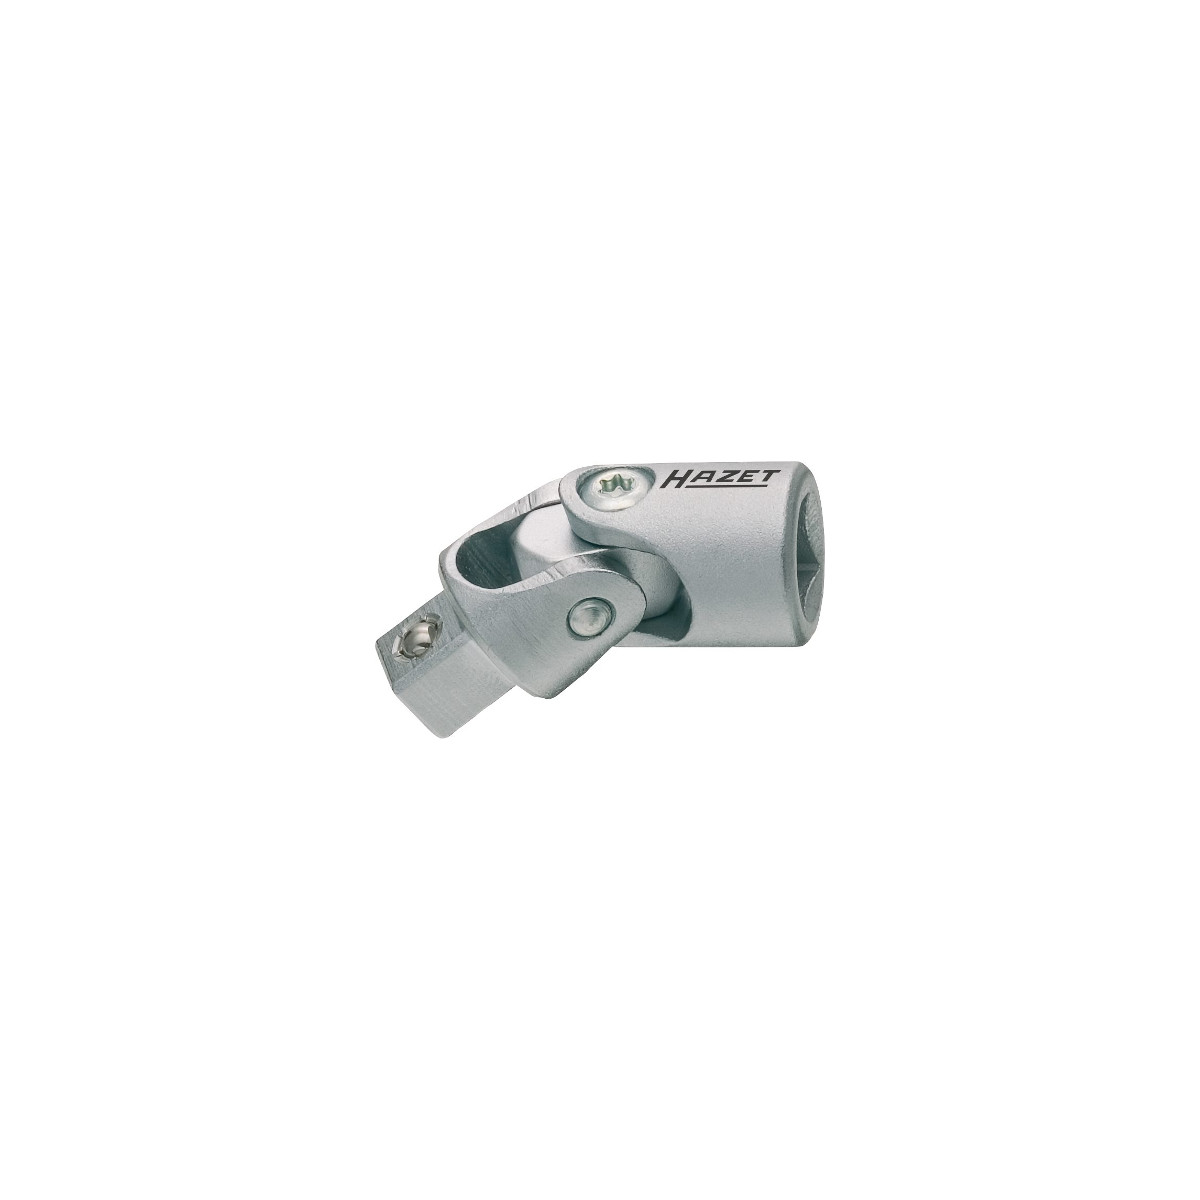 HAZET 8820 Universal joint, 46.5 mm